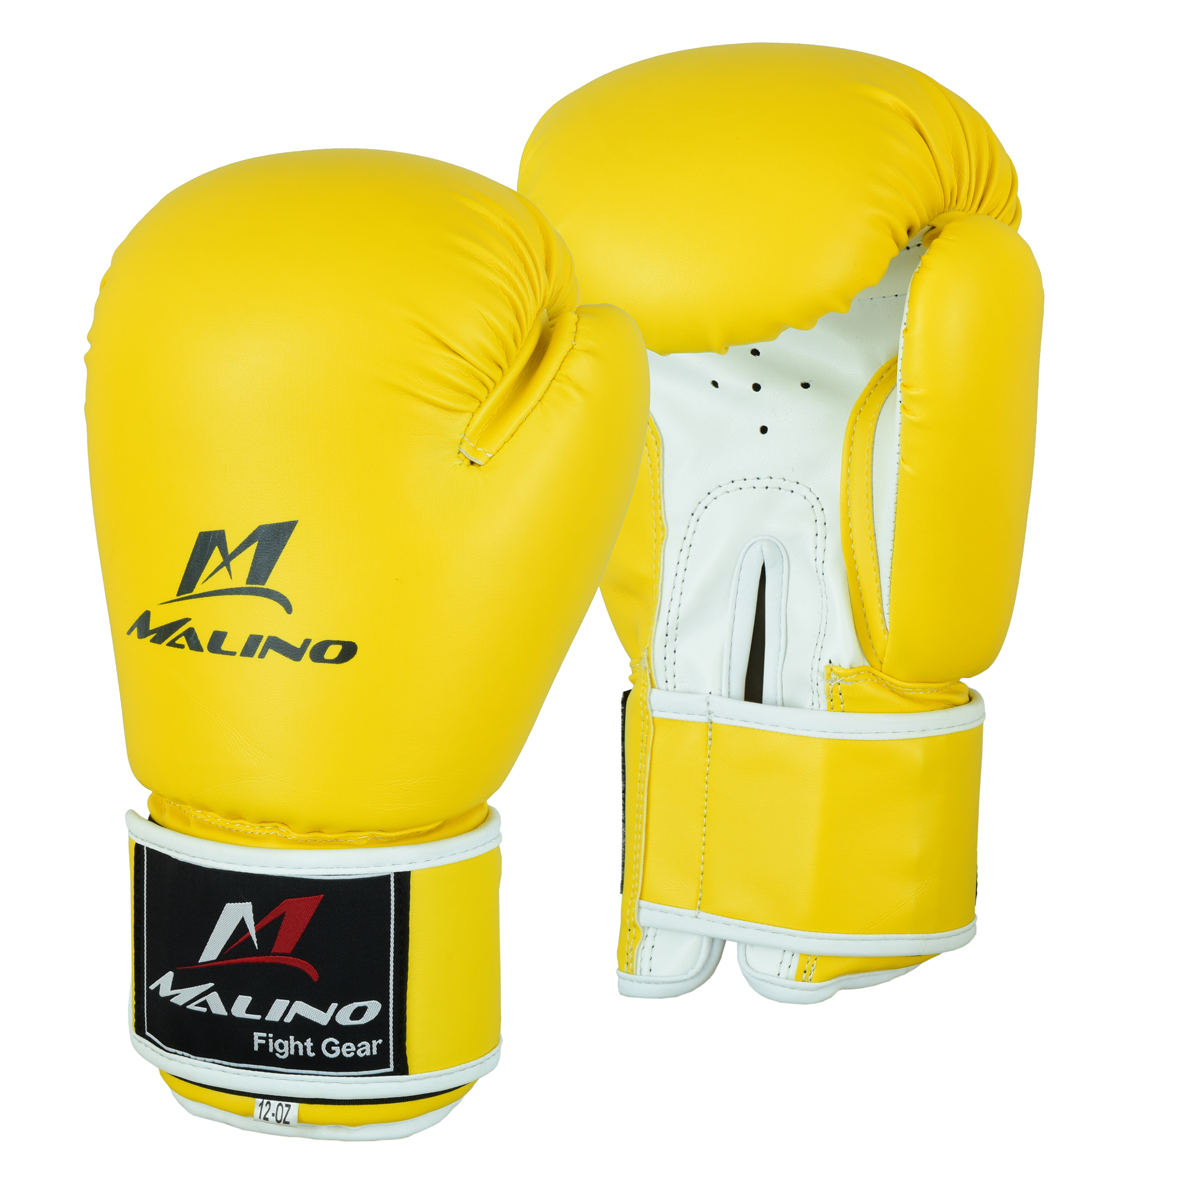 Boxing Gloves for Men Yellow-White